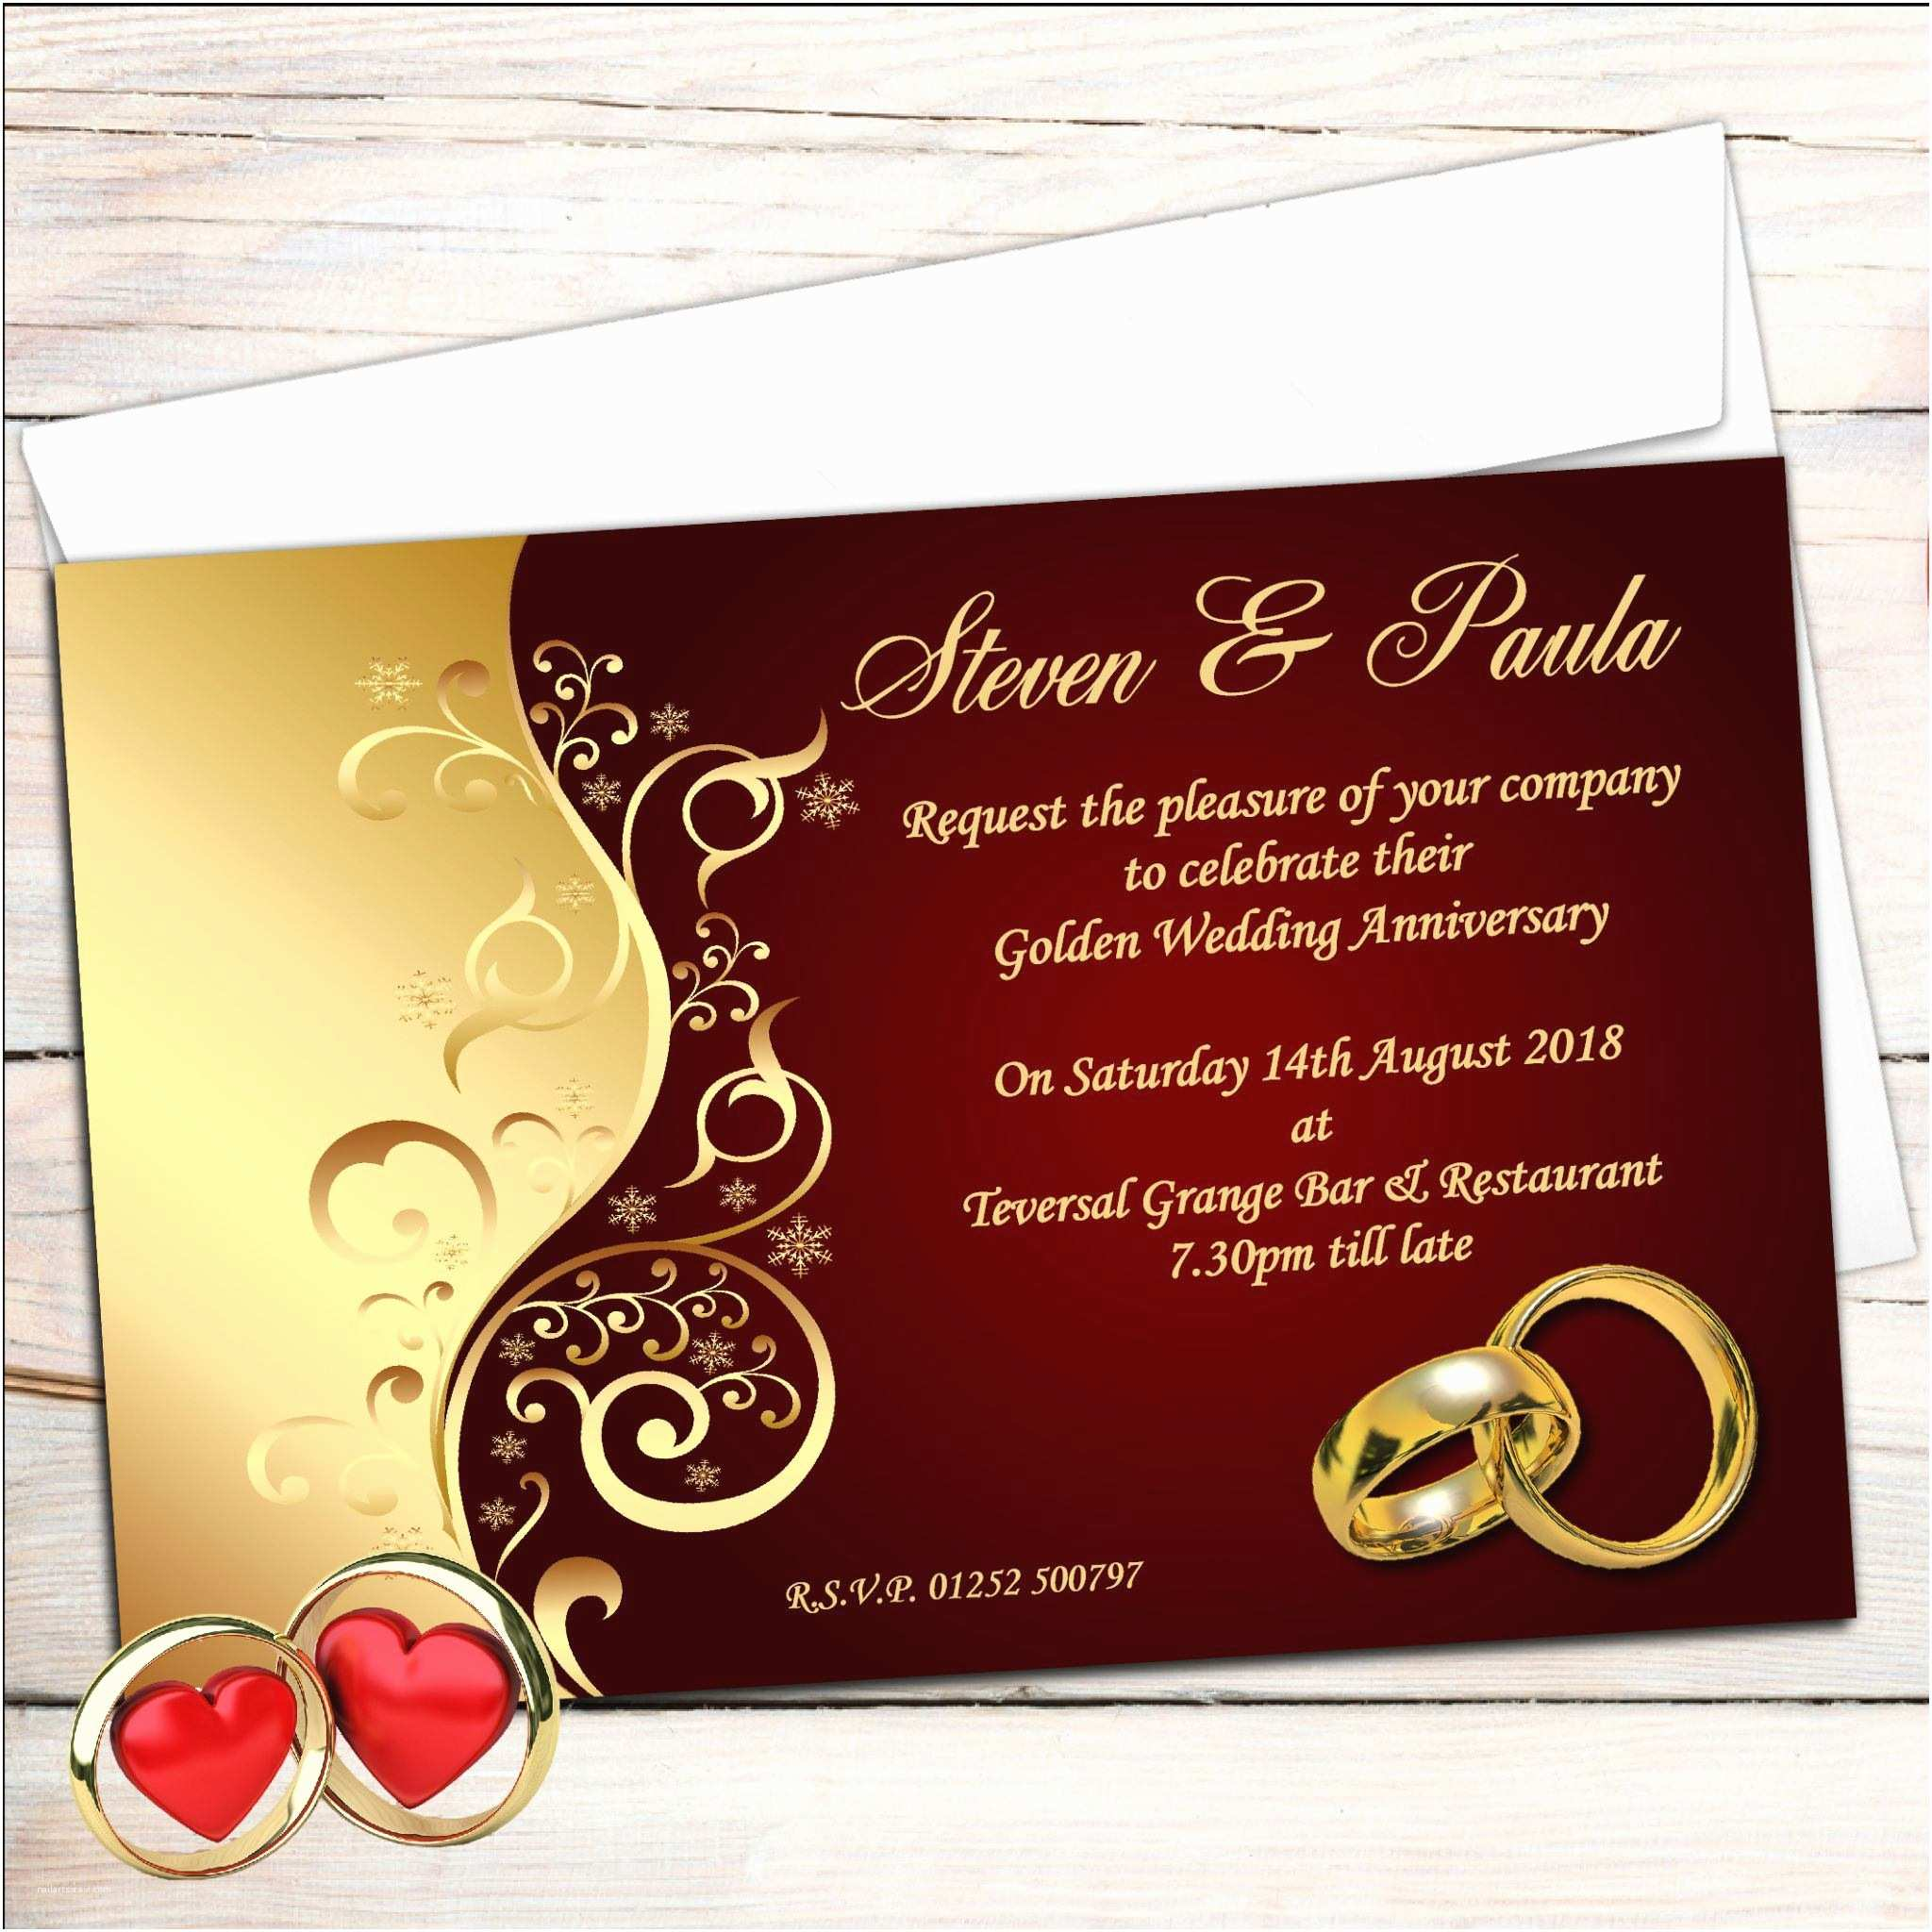 Wedding Invitation Cards Wedding Invitations Cards Wedding Invitations Cards